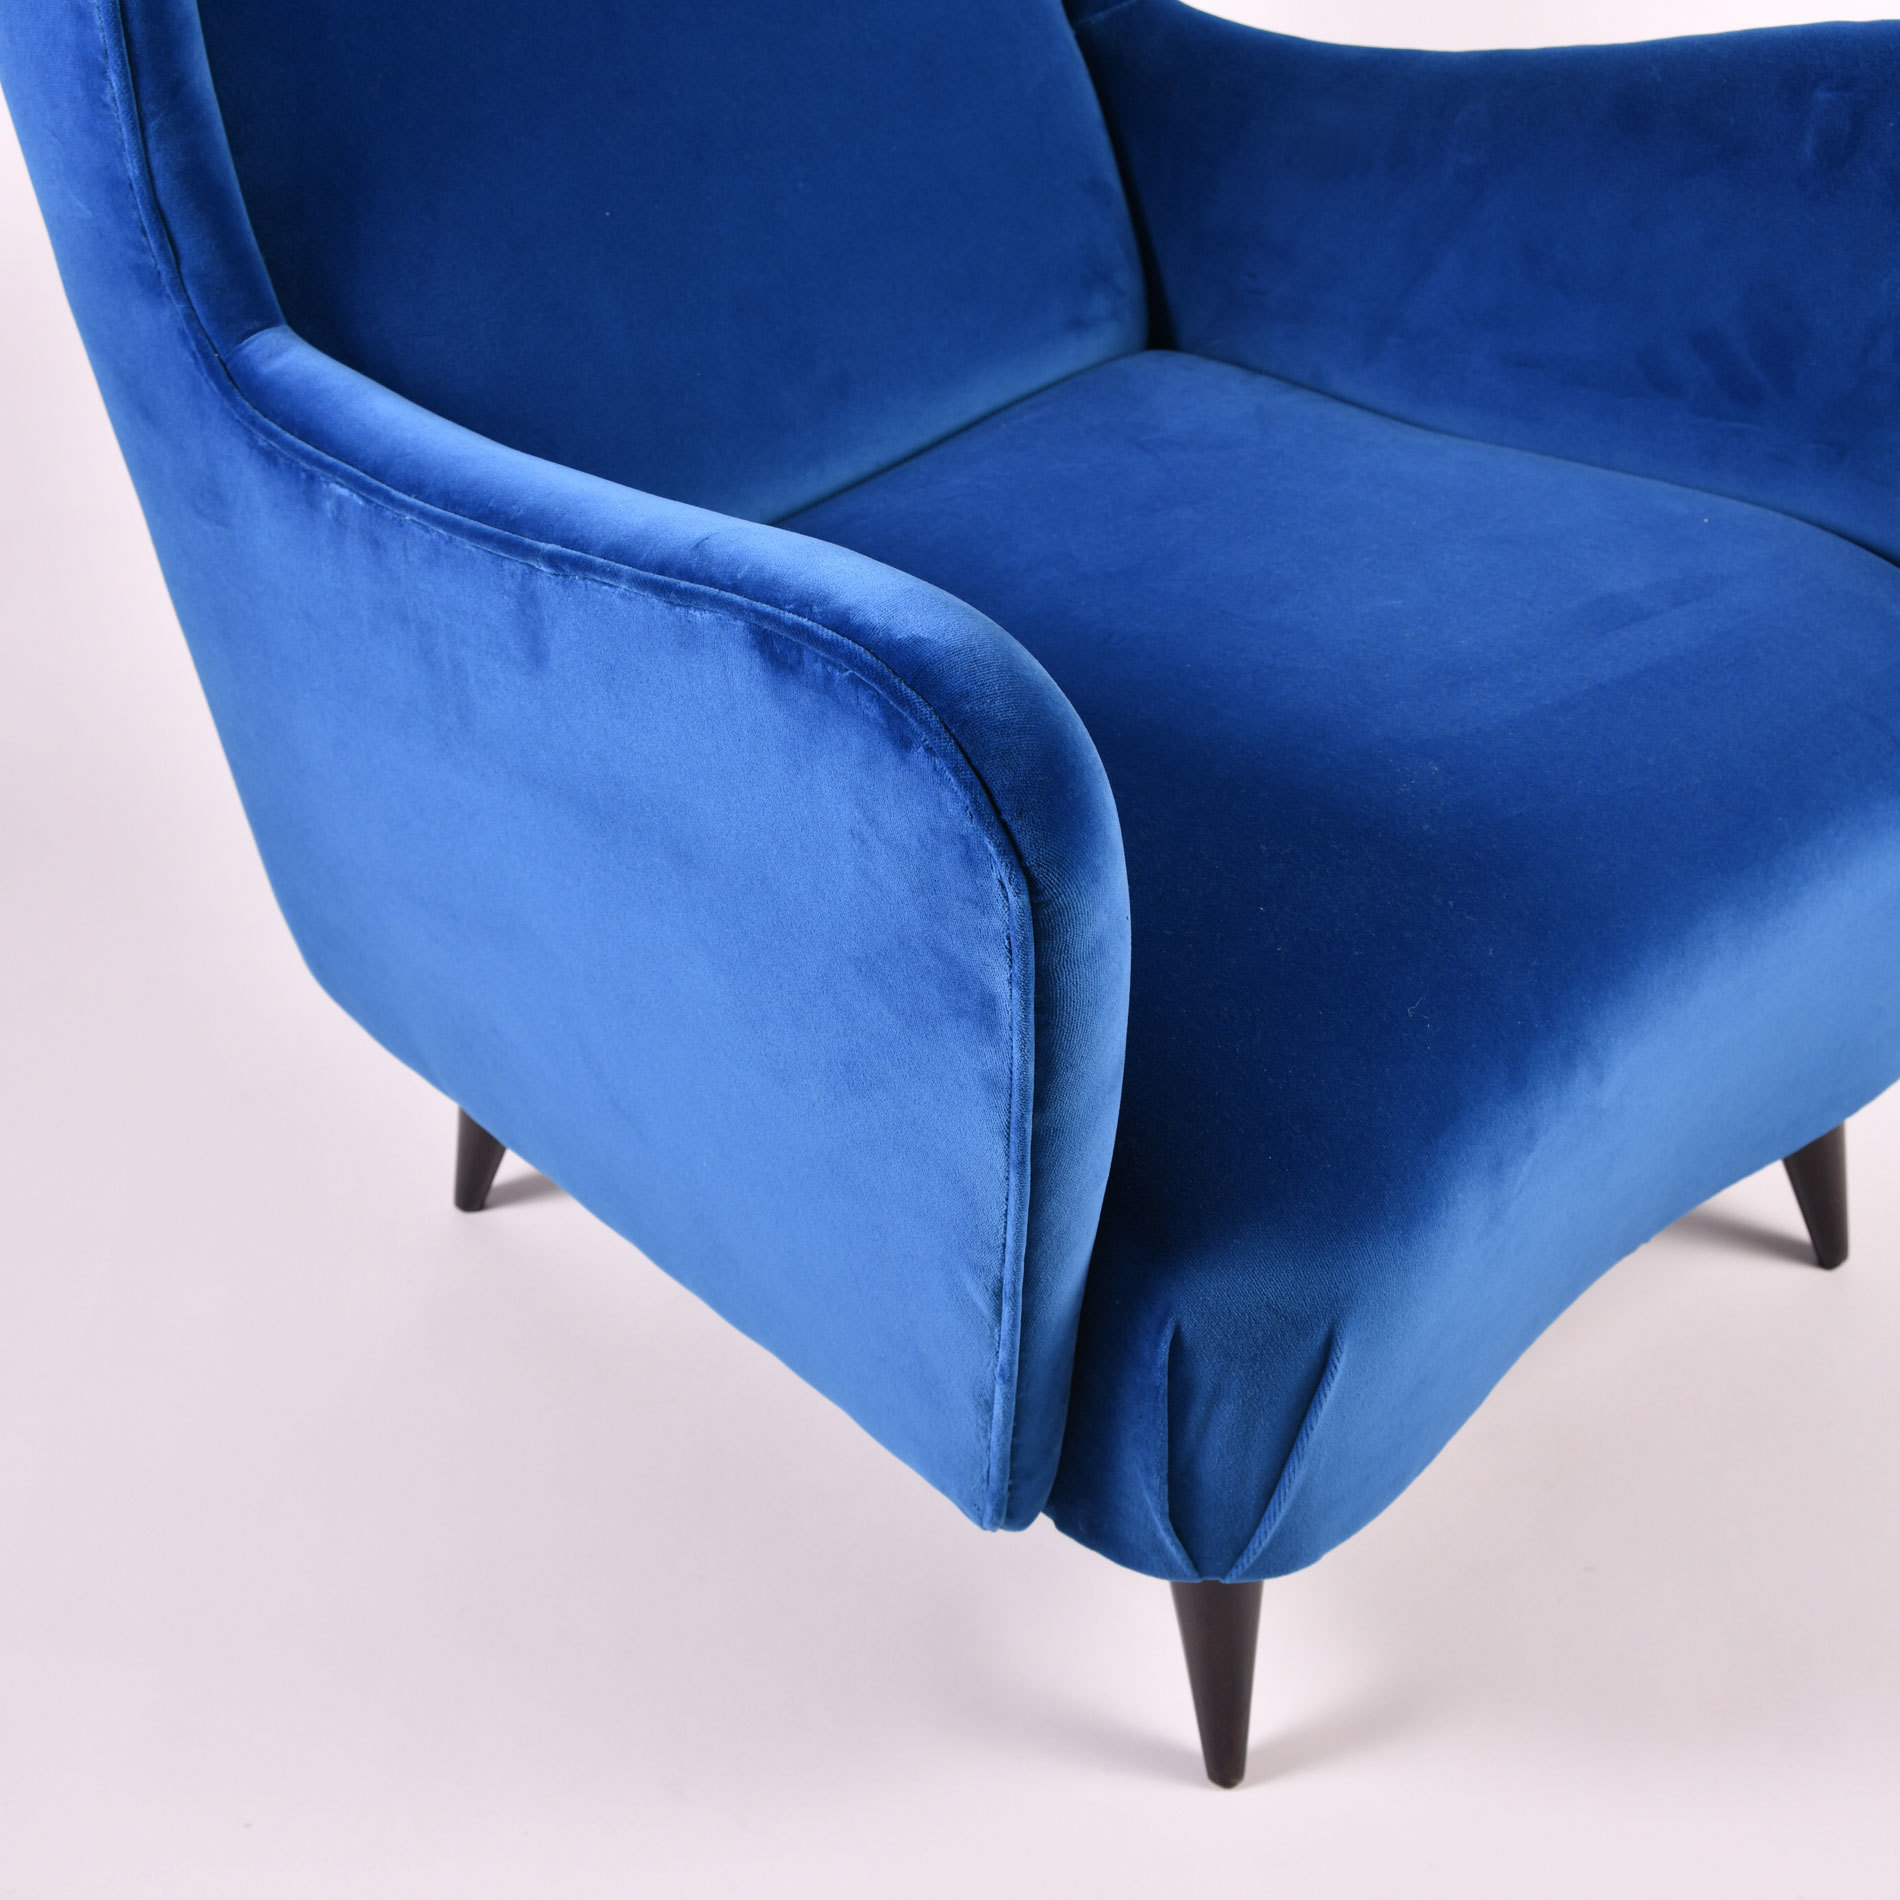 The image for Paolo Buffa Blue Velvet Armchair 06